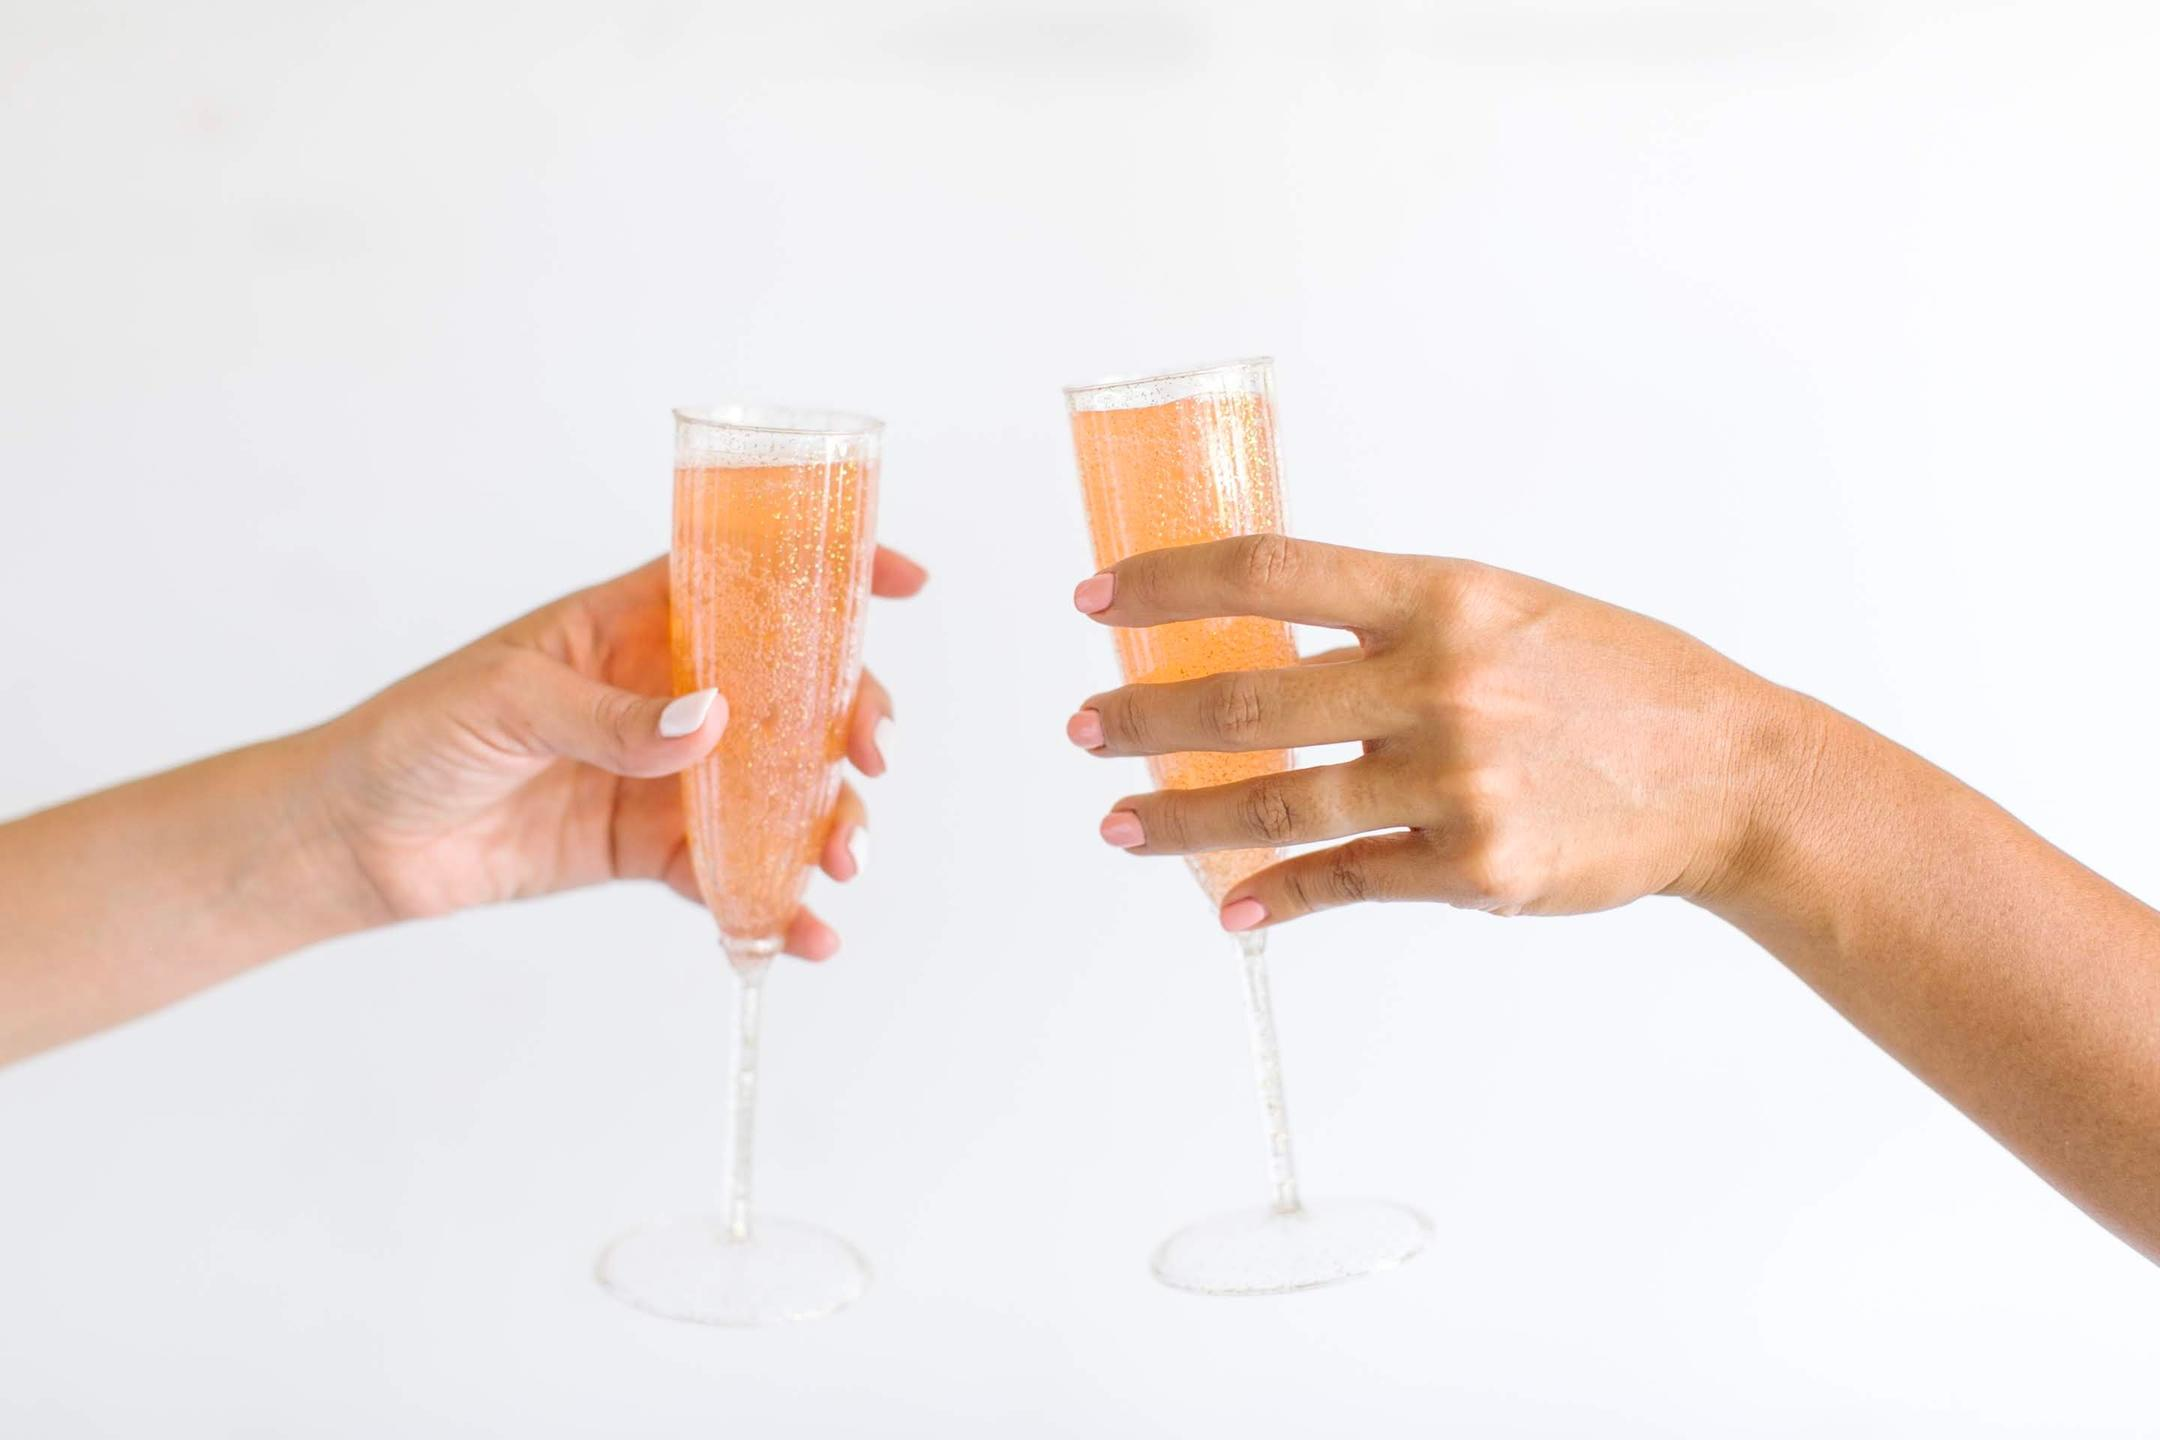 Two hands holding glasses of champagne about ready to cheers